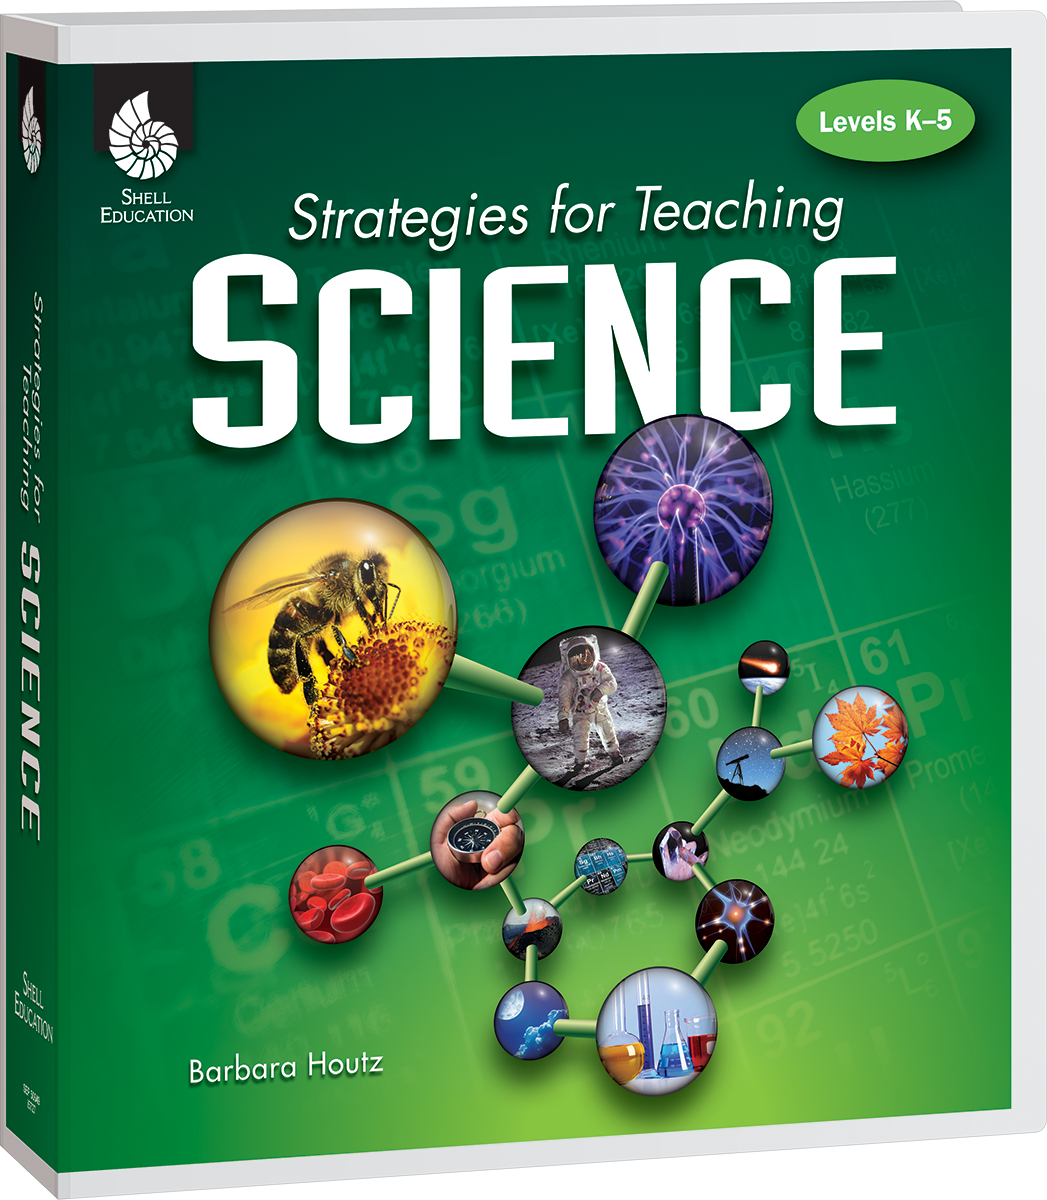 thesis about strategies in teaching science